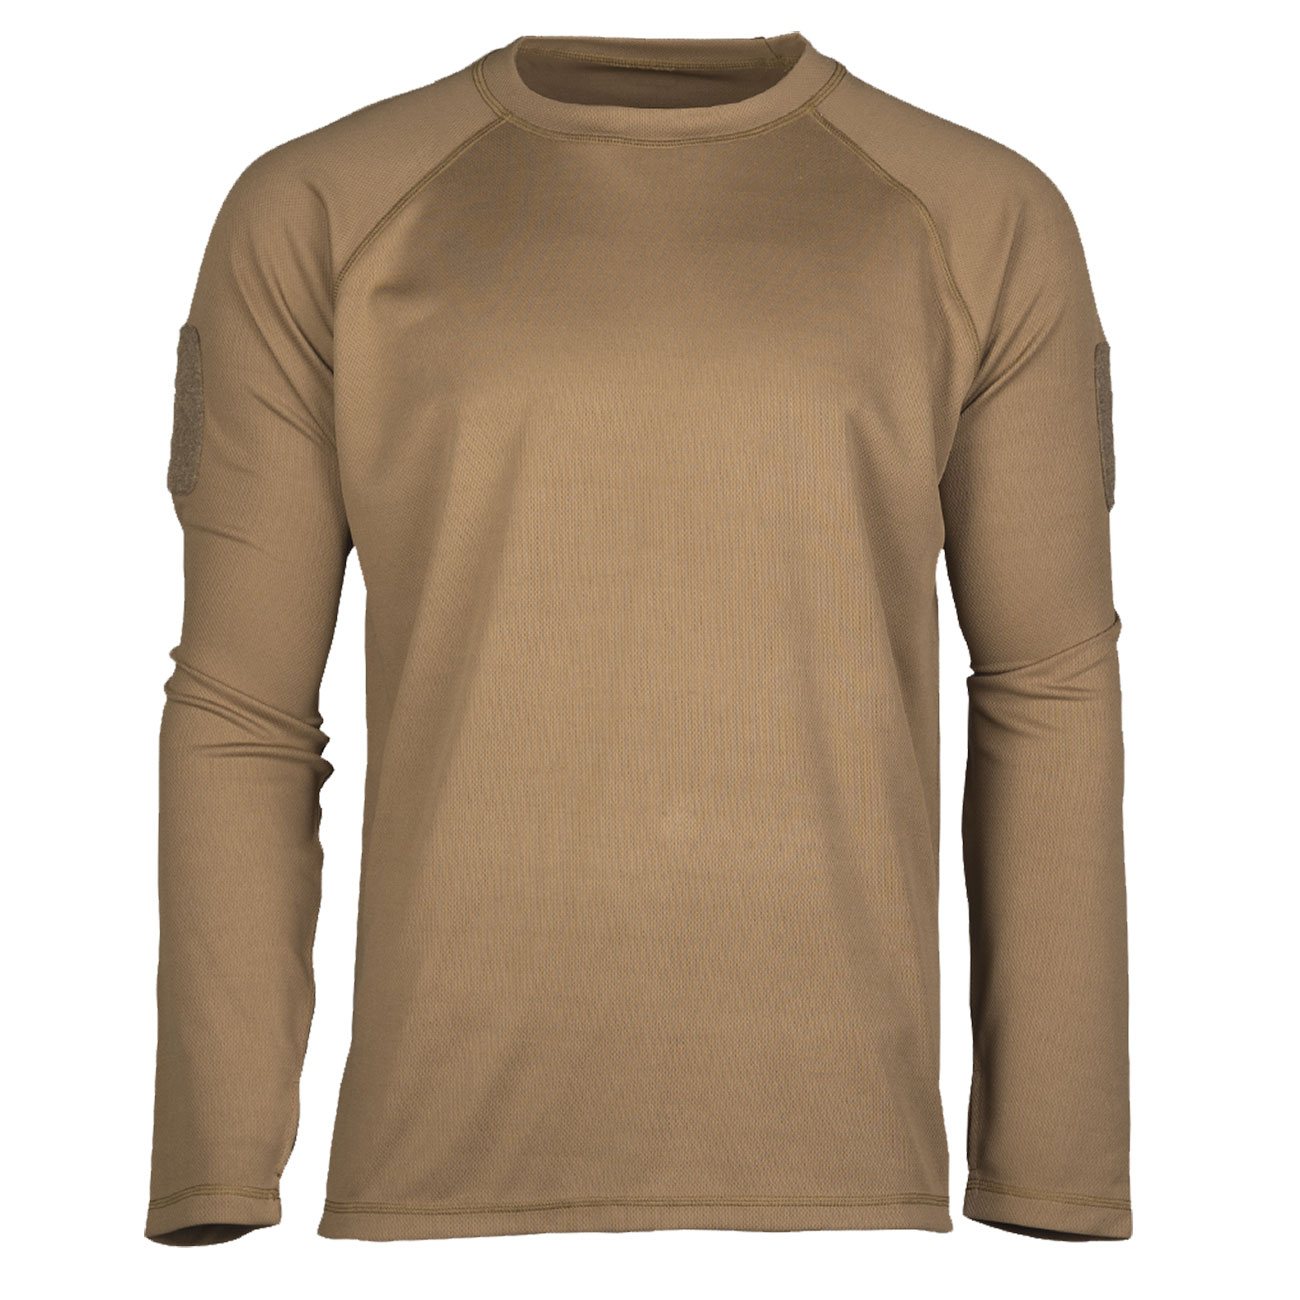 Mil-Tec Langarmshirt Tactical Quick Dry dark coyote 0